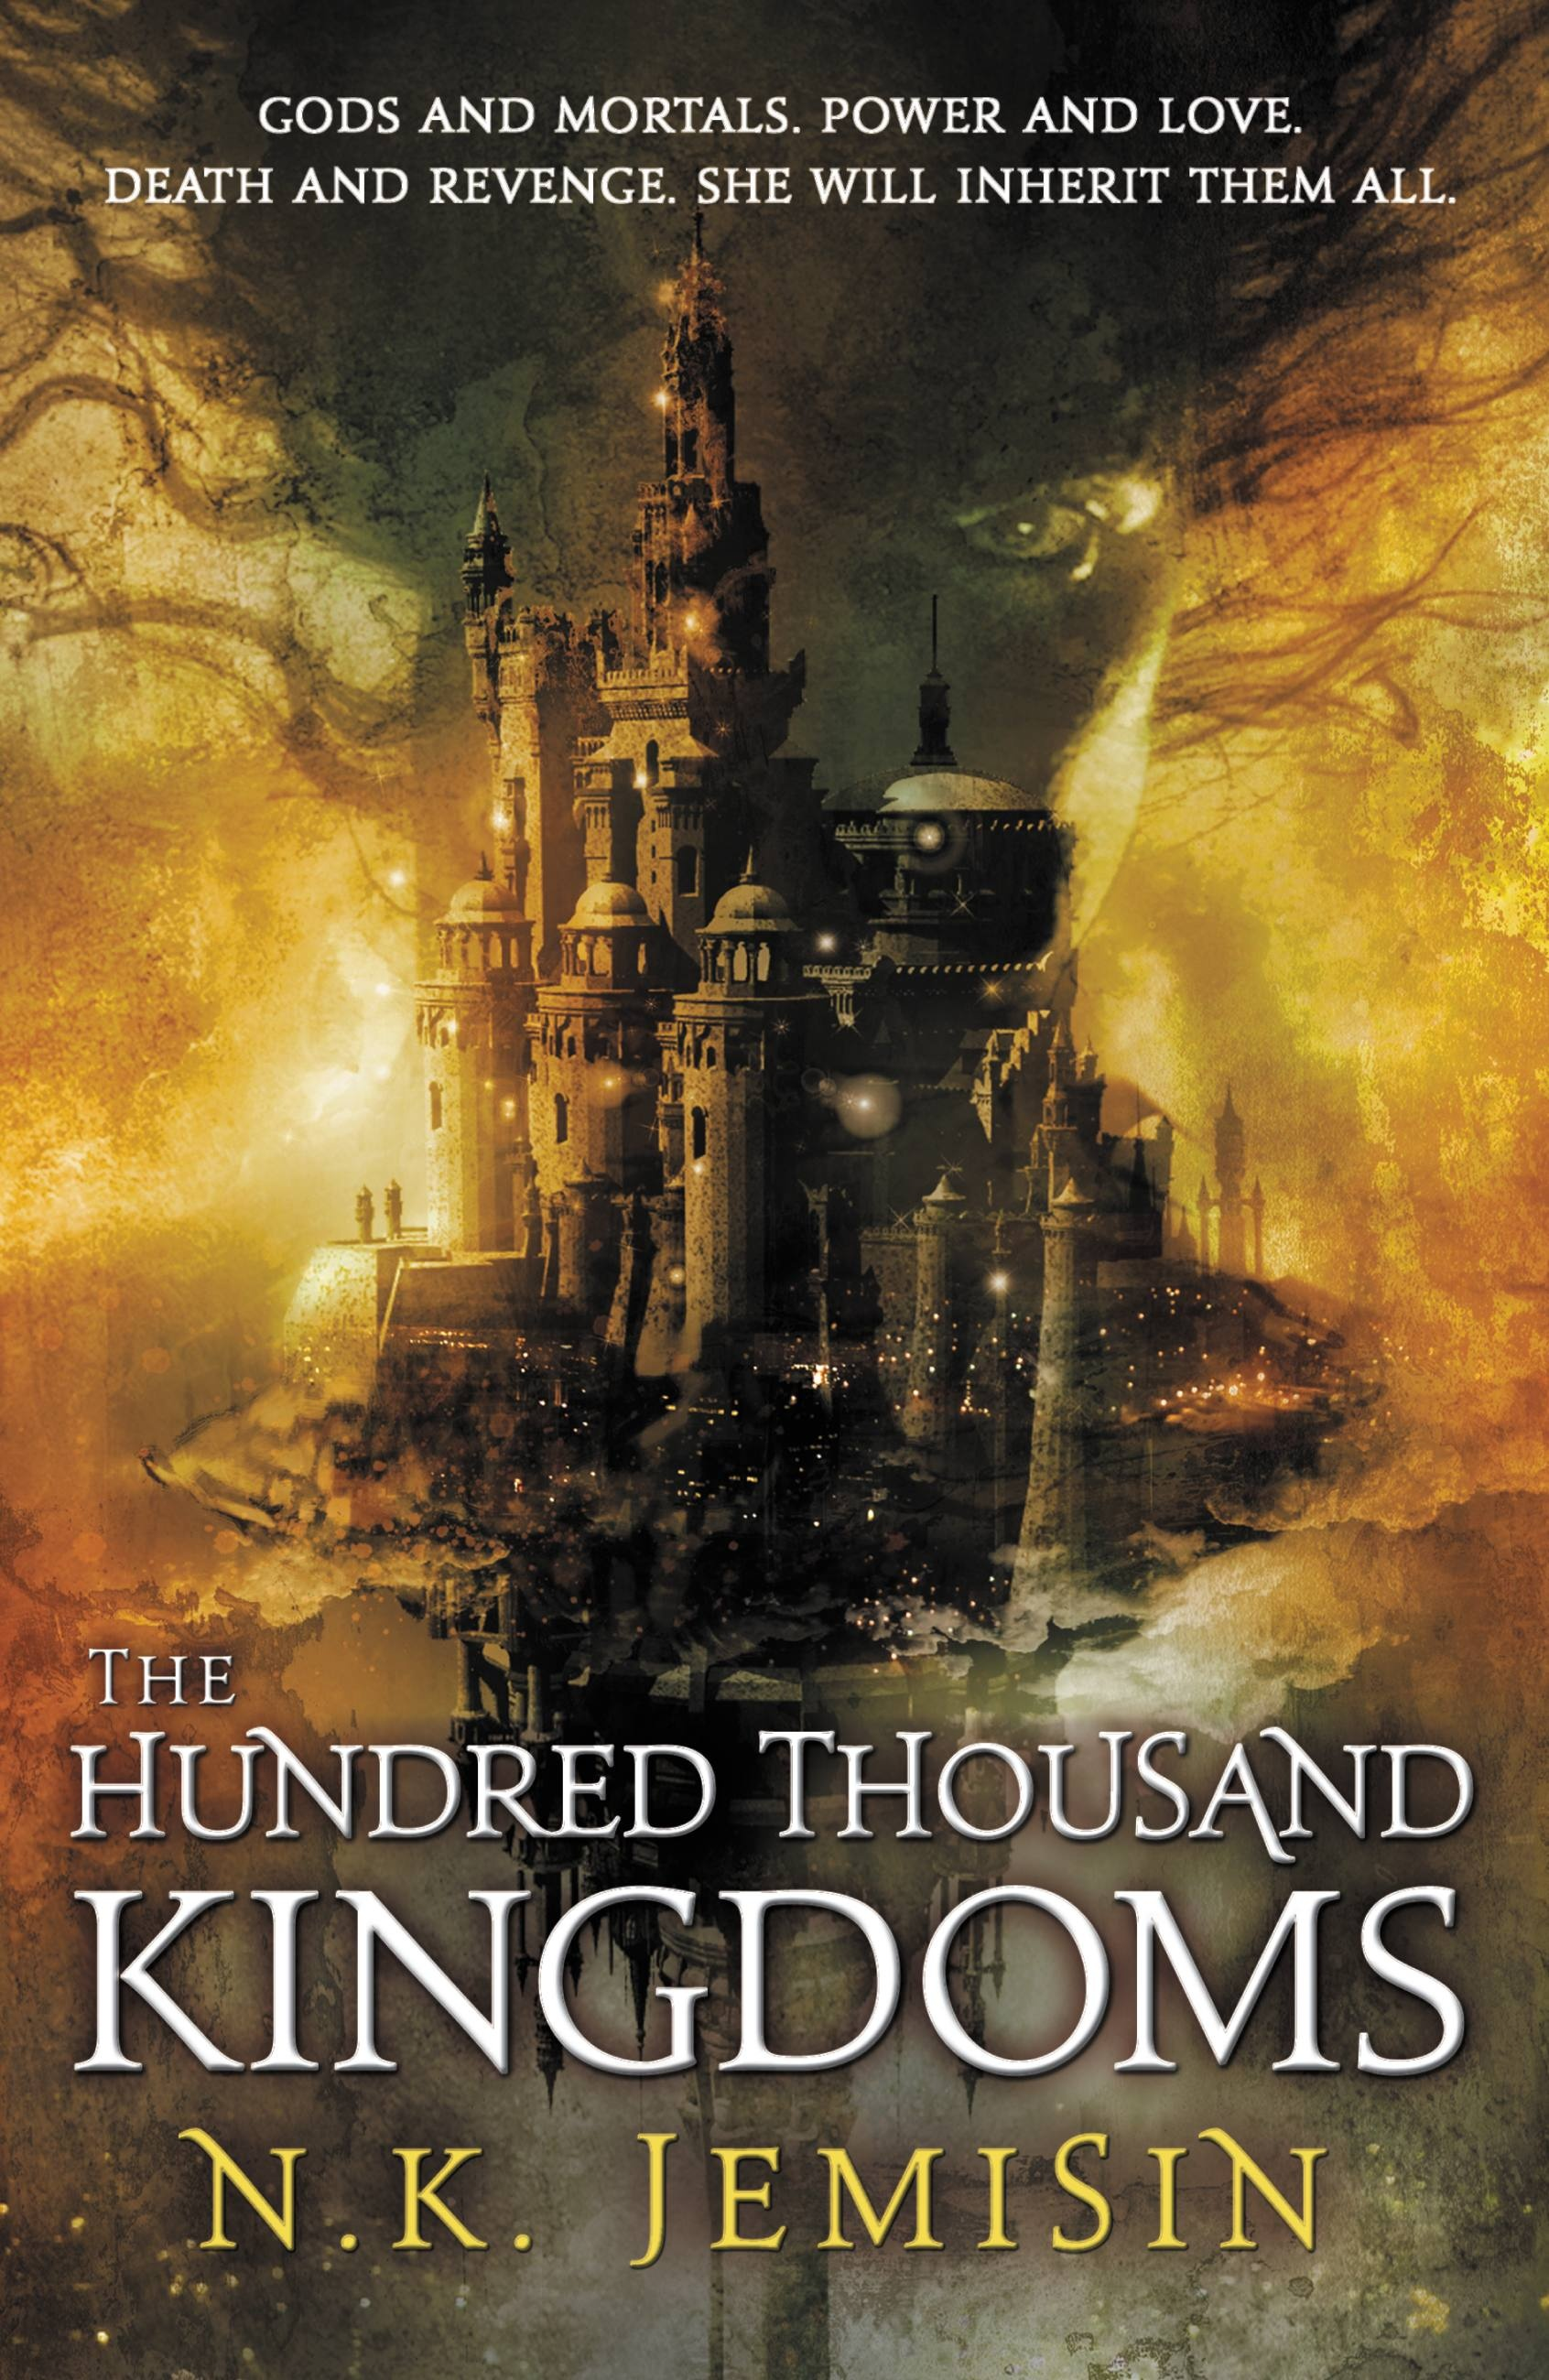 The Hundred Thousand Kingdoms , by N.K. Jemisin